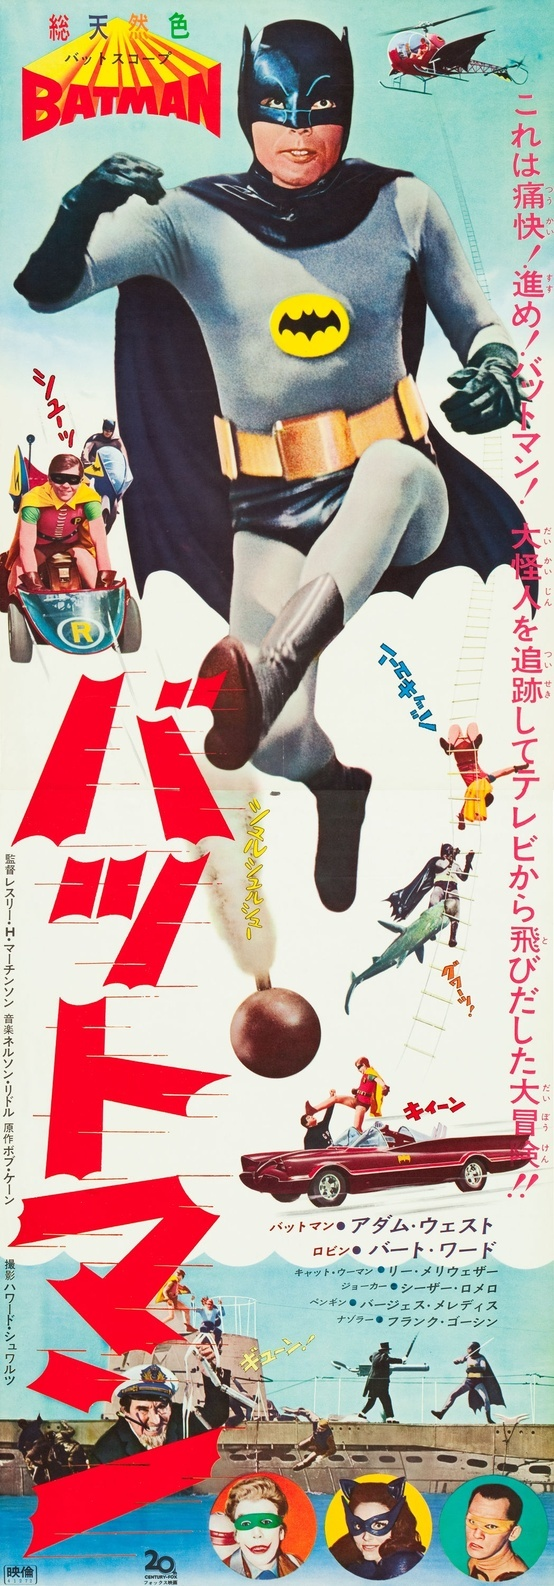 Batman the Movie (1966) japanse filmposter